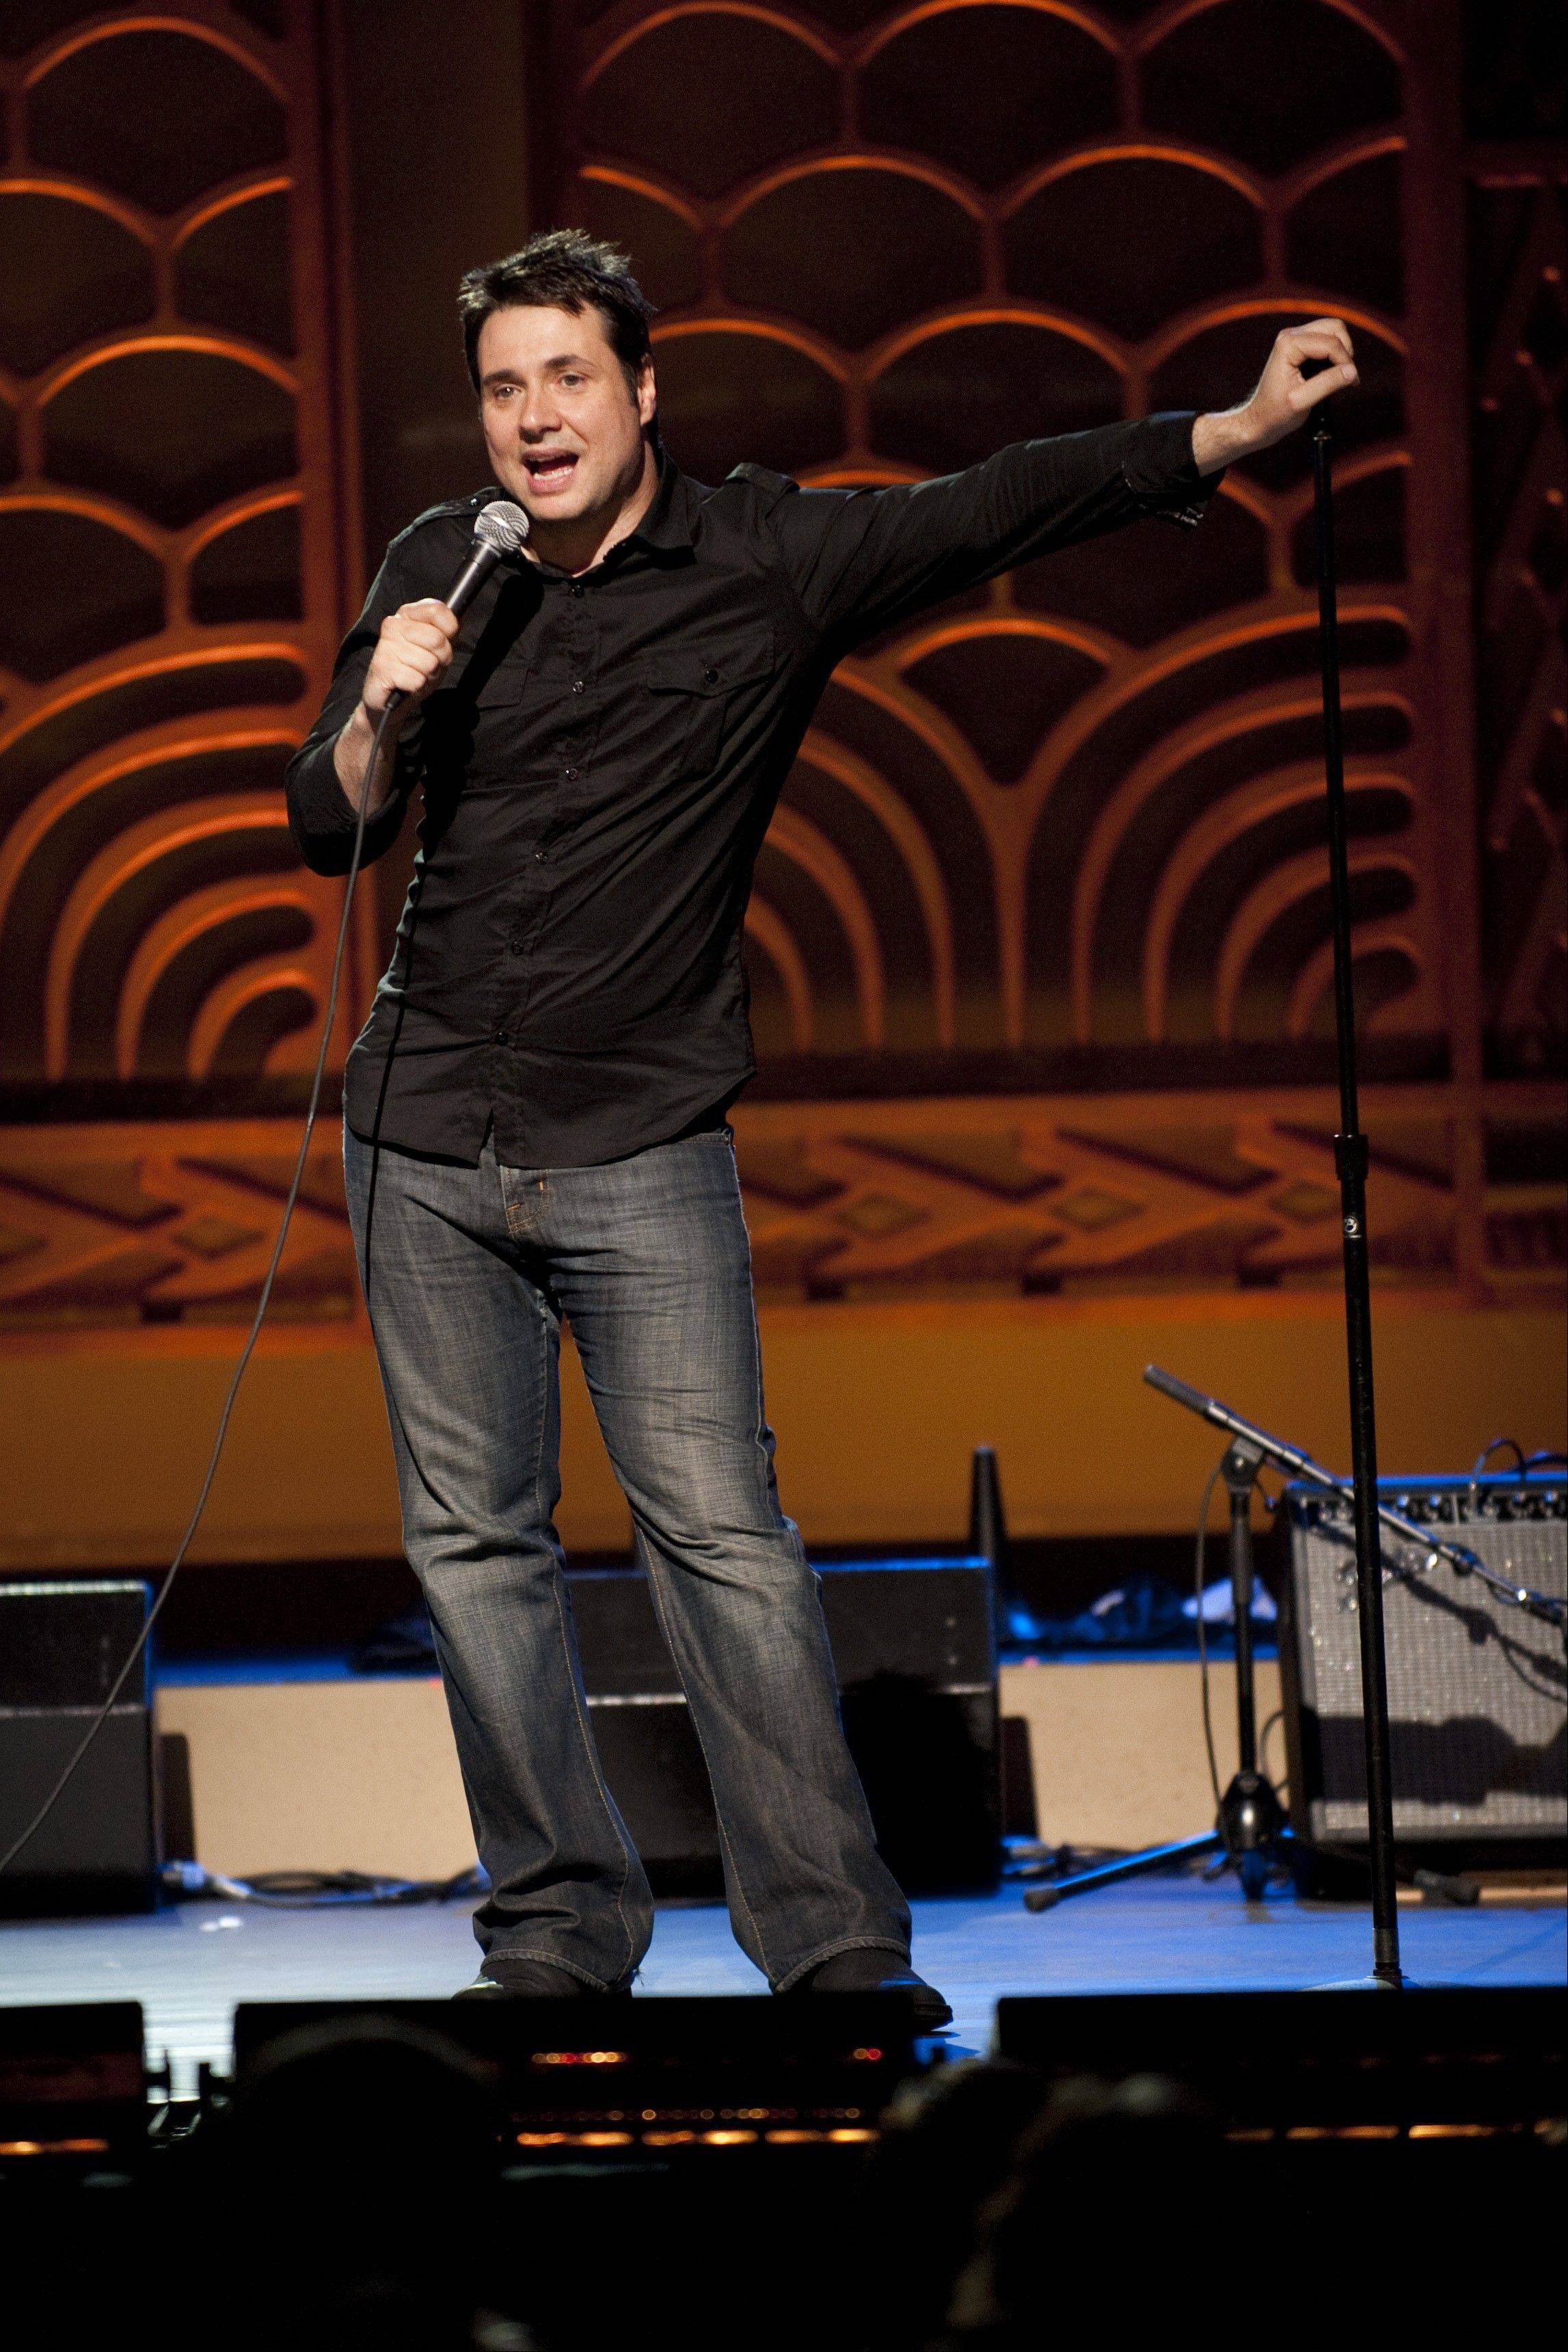 Adam Ferrara headlines The Improv Comedy Showcase in Schaumburg this weekend.